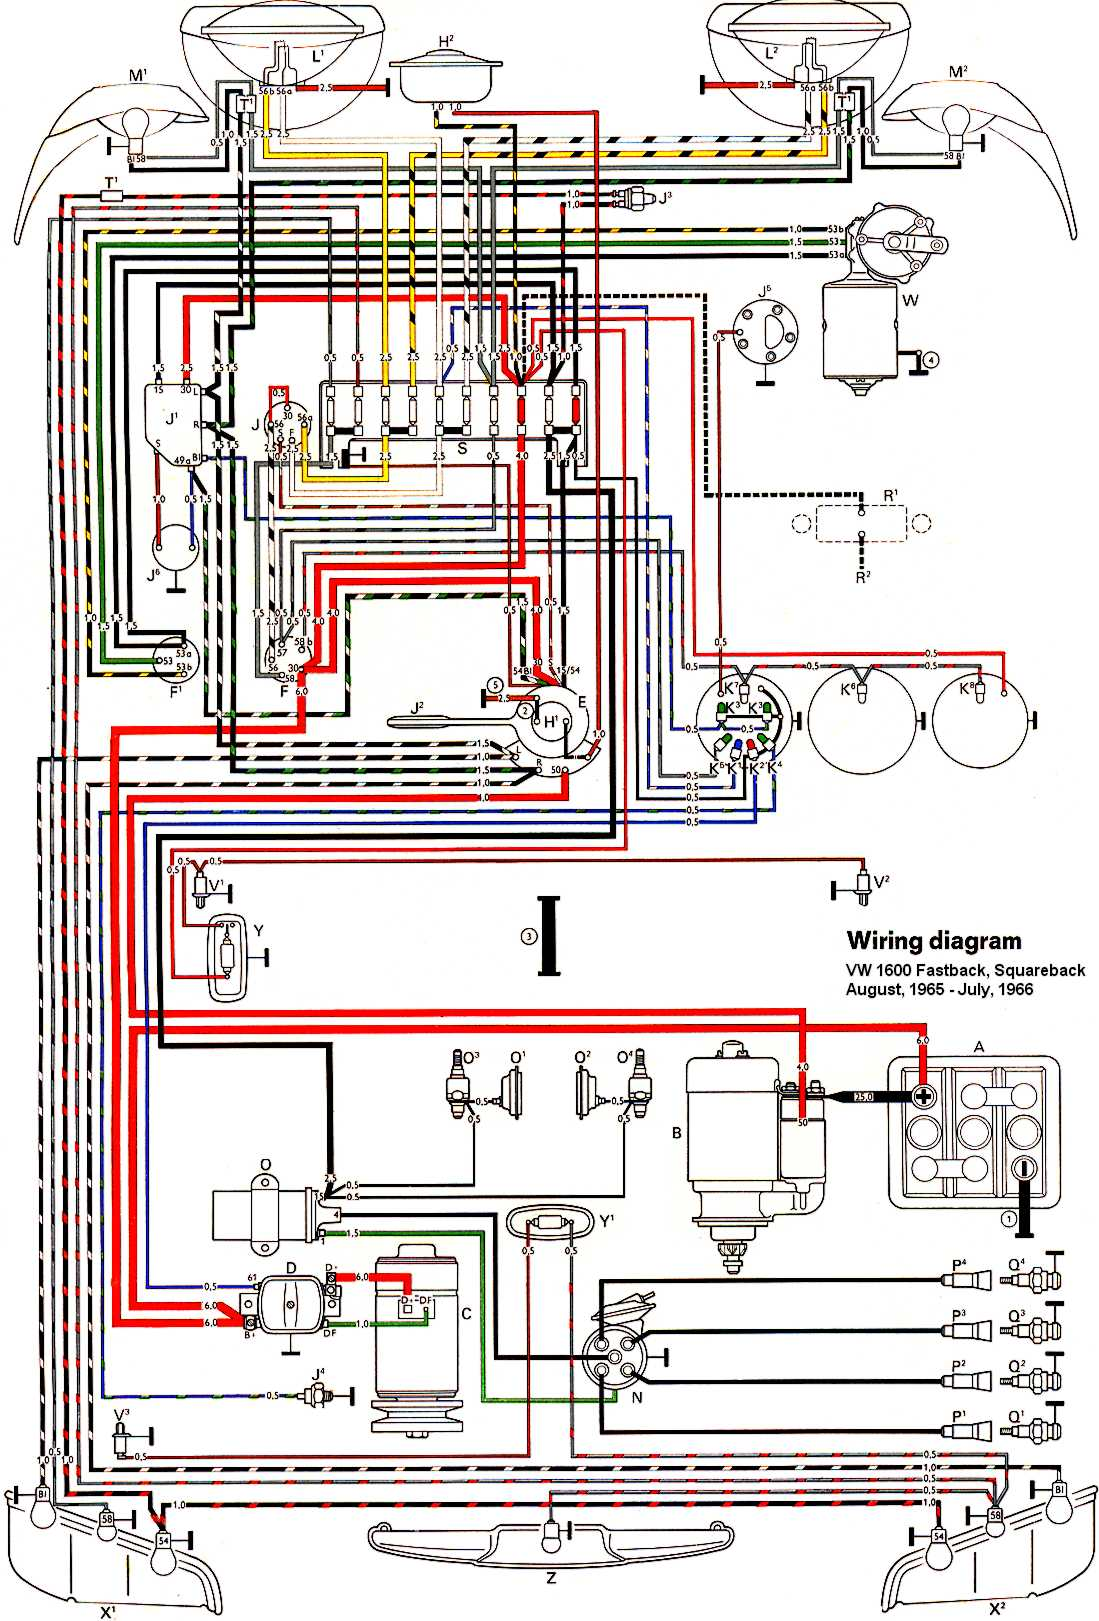 Vw Thing Engine Wire Diagram Worksheet And Wiring 1999 Volkswagen Jetta 1974 Will Be A U2022 Rh Exploreandmore Co Uk 20